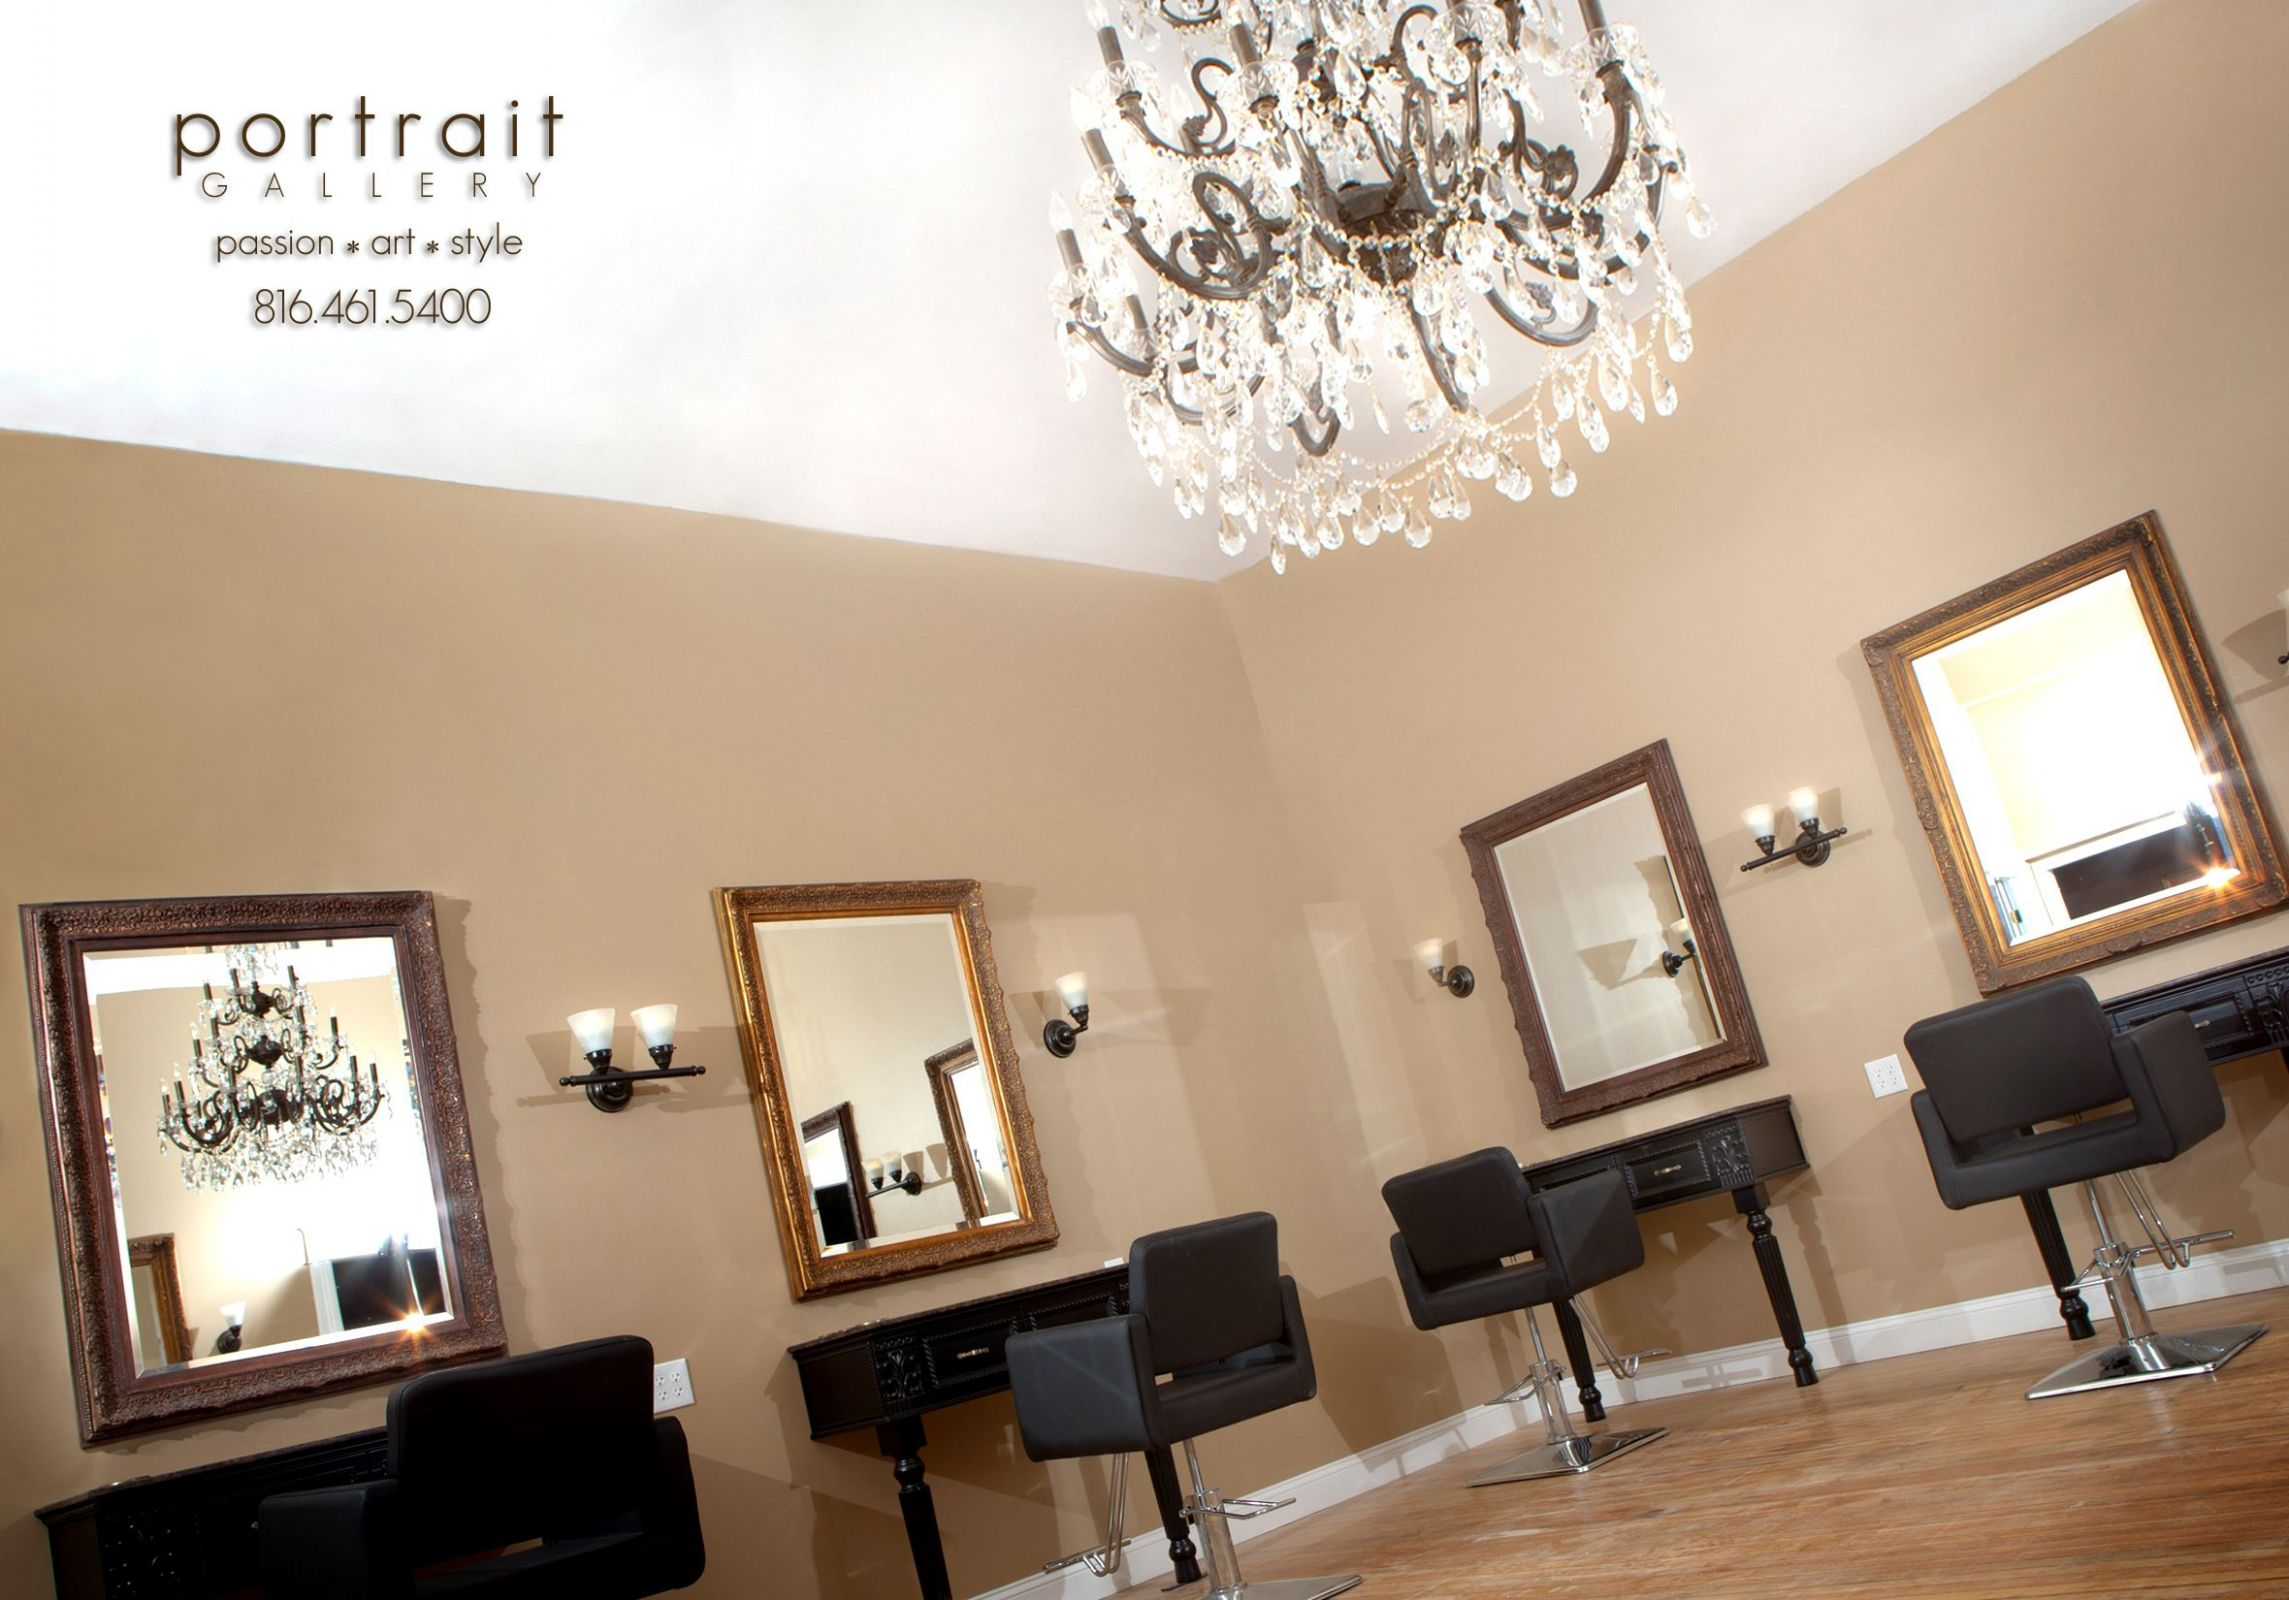 10 New Salon Stations for Rent • Looking For Hair & Makeup Artists ...